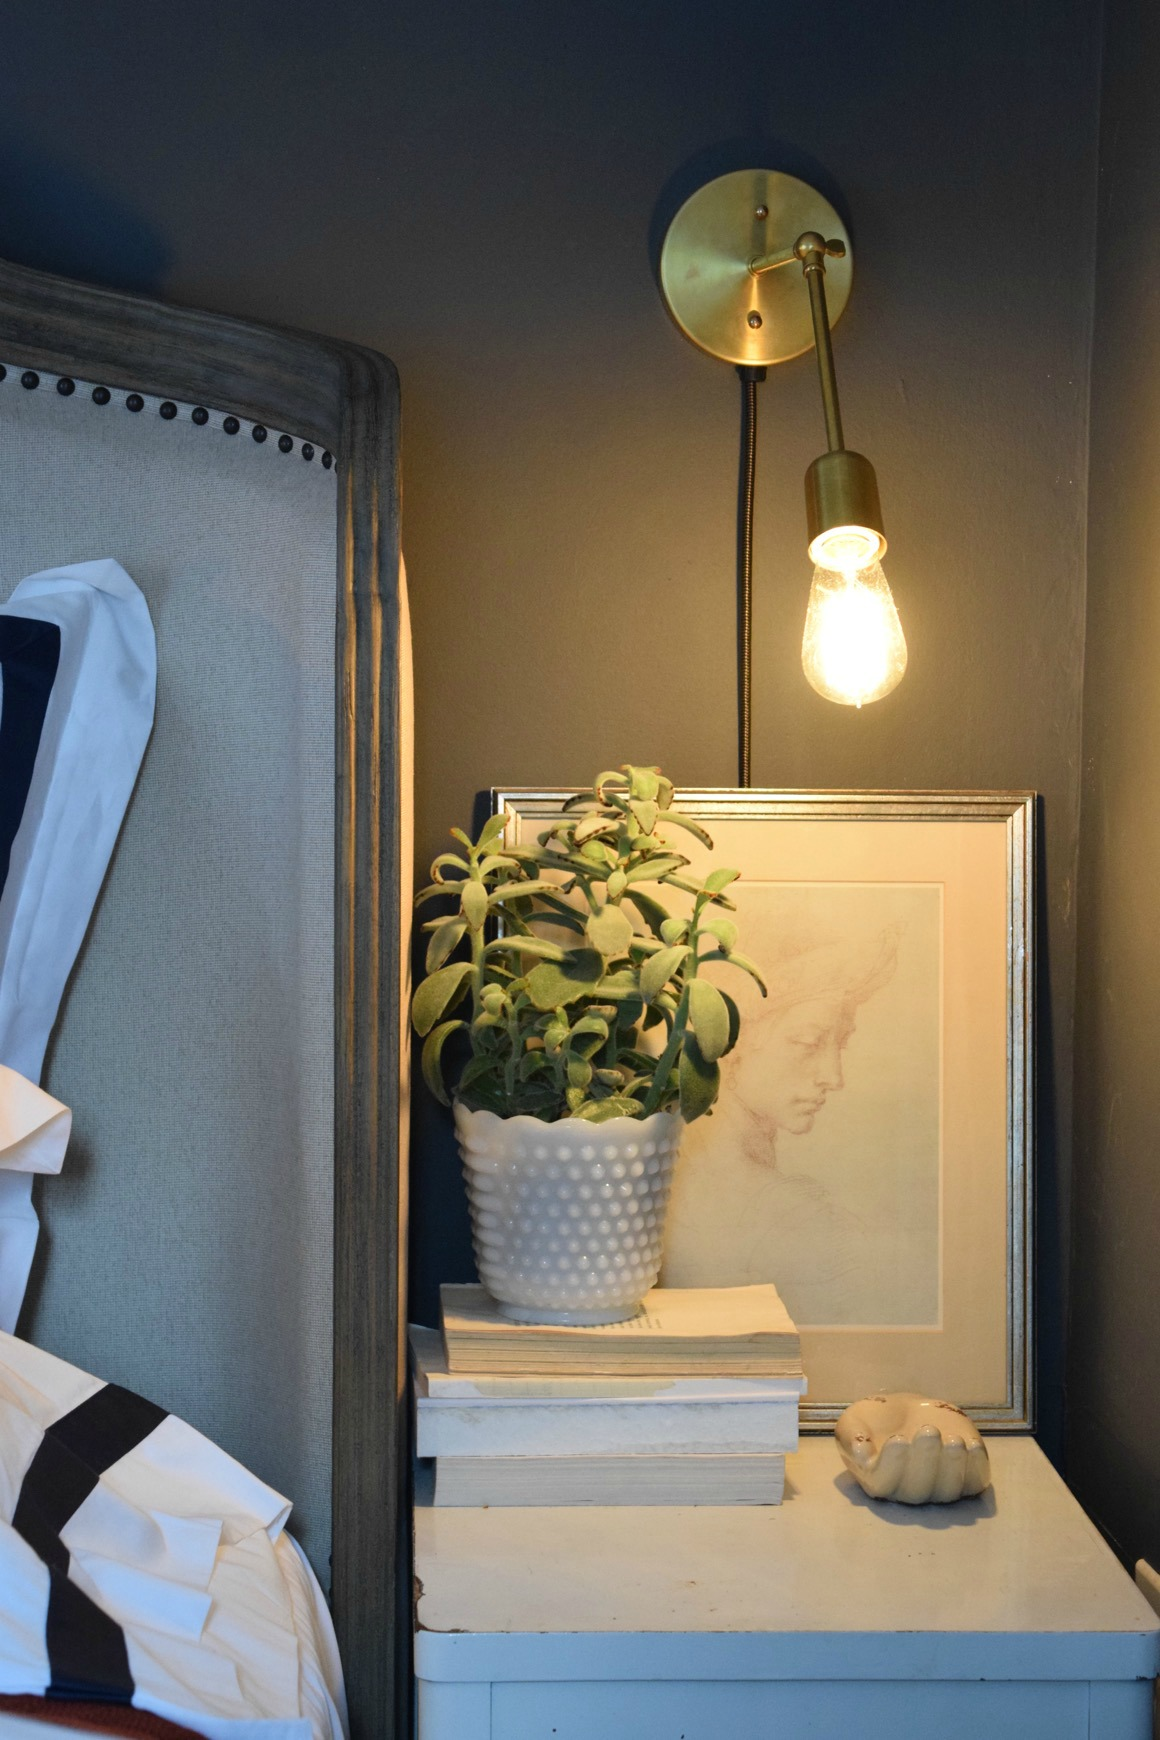 Professional's Corner | Brass Wall Sconces Offer Dramatic ... on Brass Wall Sconces Non Electric Lighting id=54683